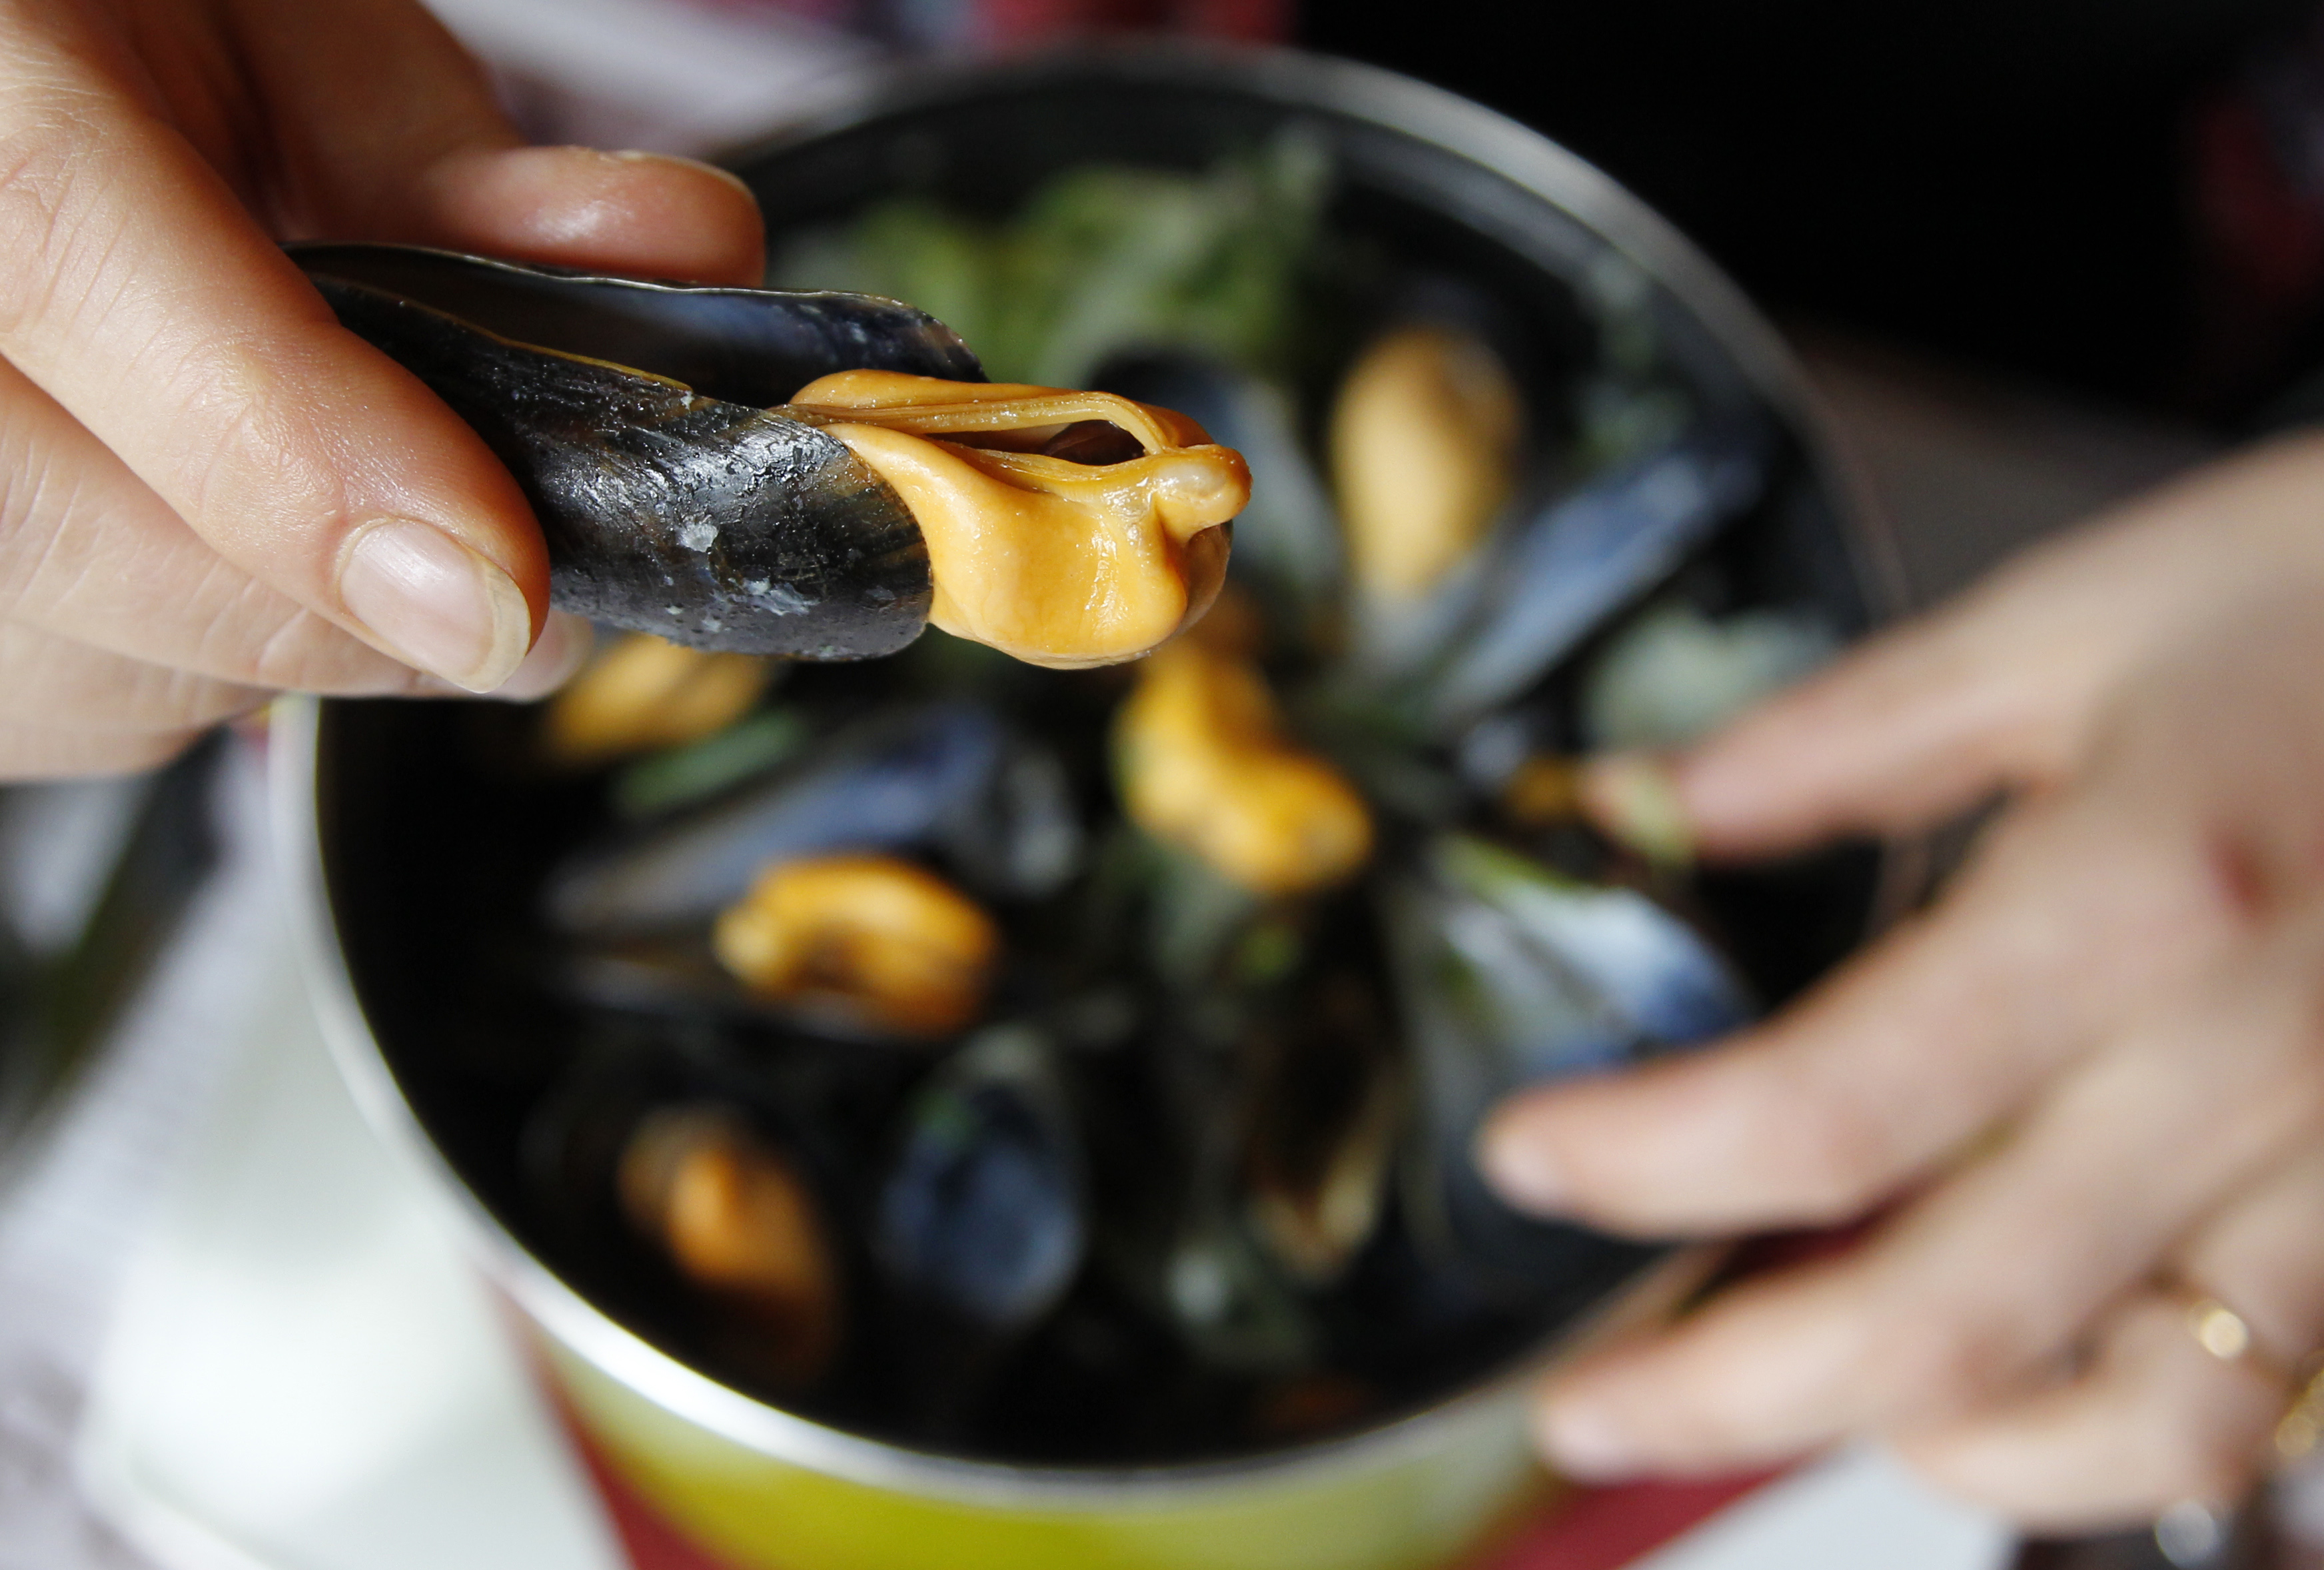 Eating a mussel